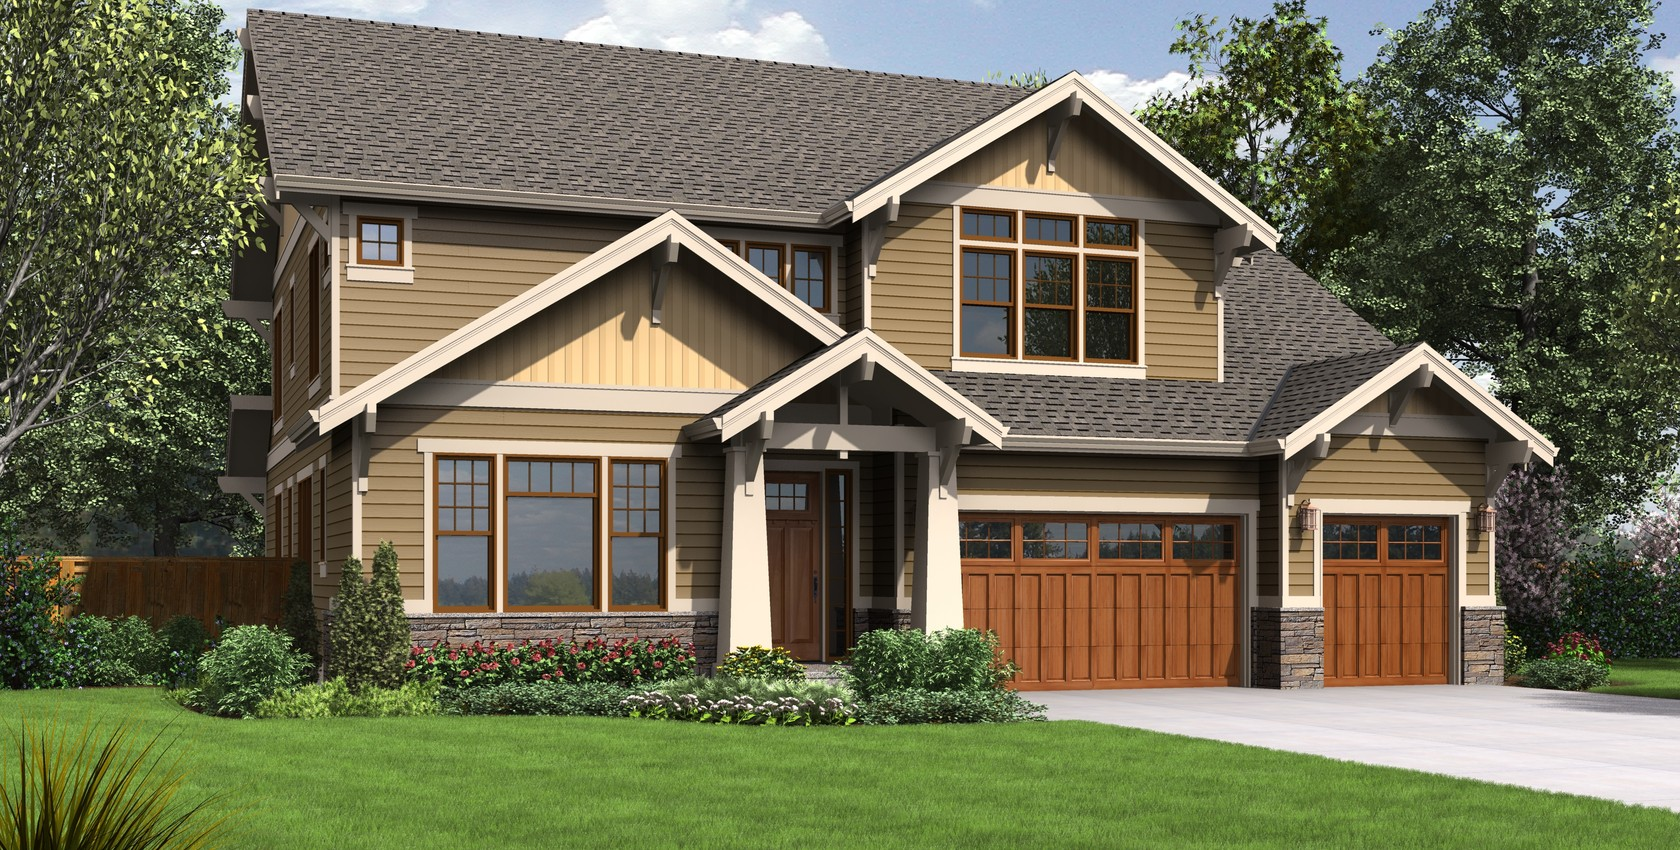 Image for Tualatin-Luxurious Craftsman Home with Attractive Amenities-6326